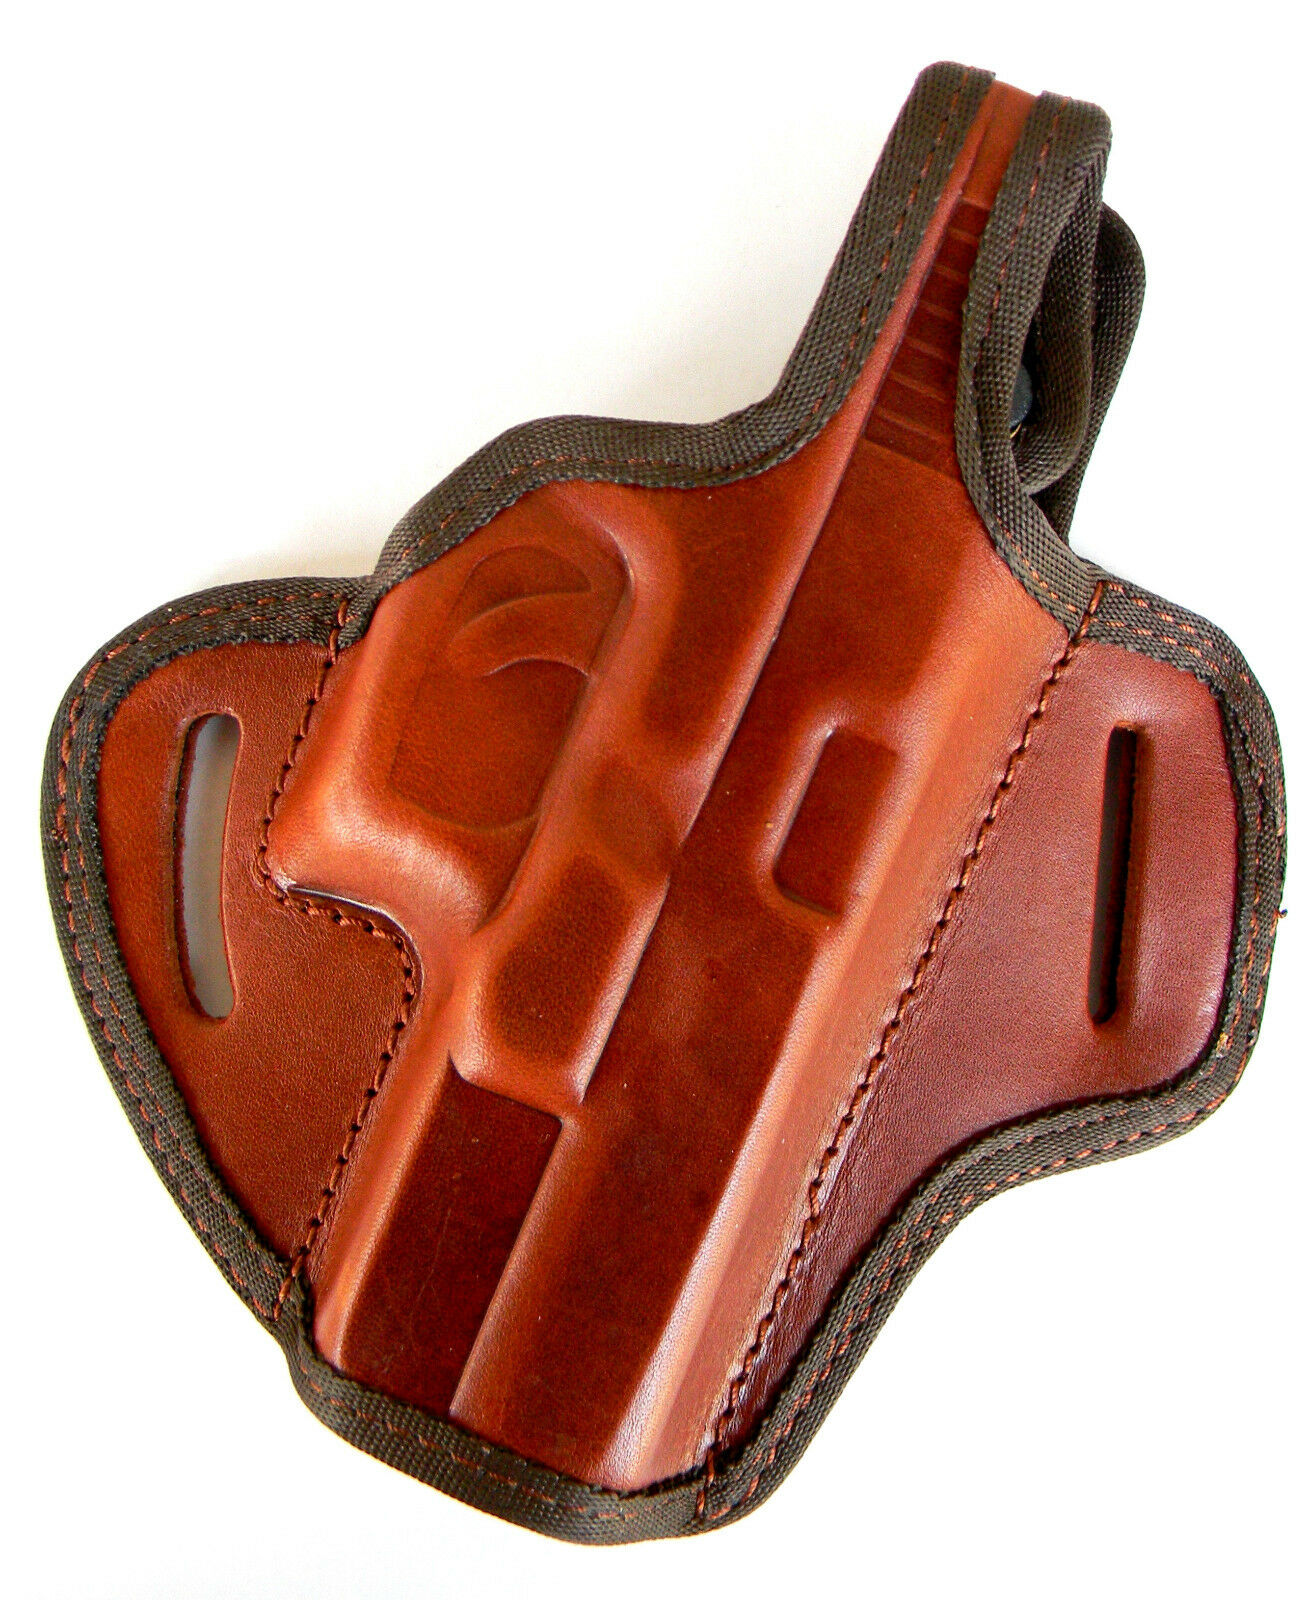 BROWN LEATHER OWB BELT SLIDE HOLSTER w  THUMB BREAK for TAURUS 24 7 PRO 4